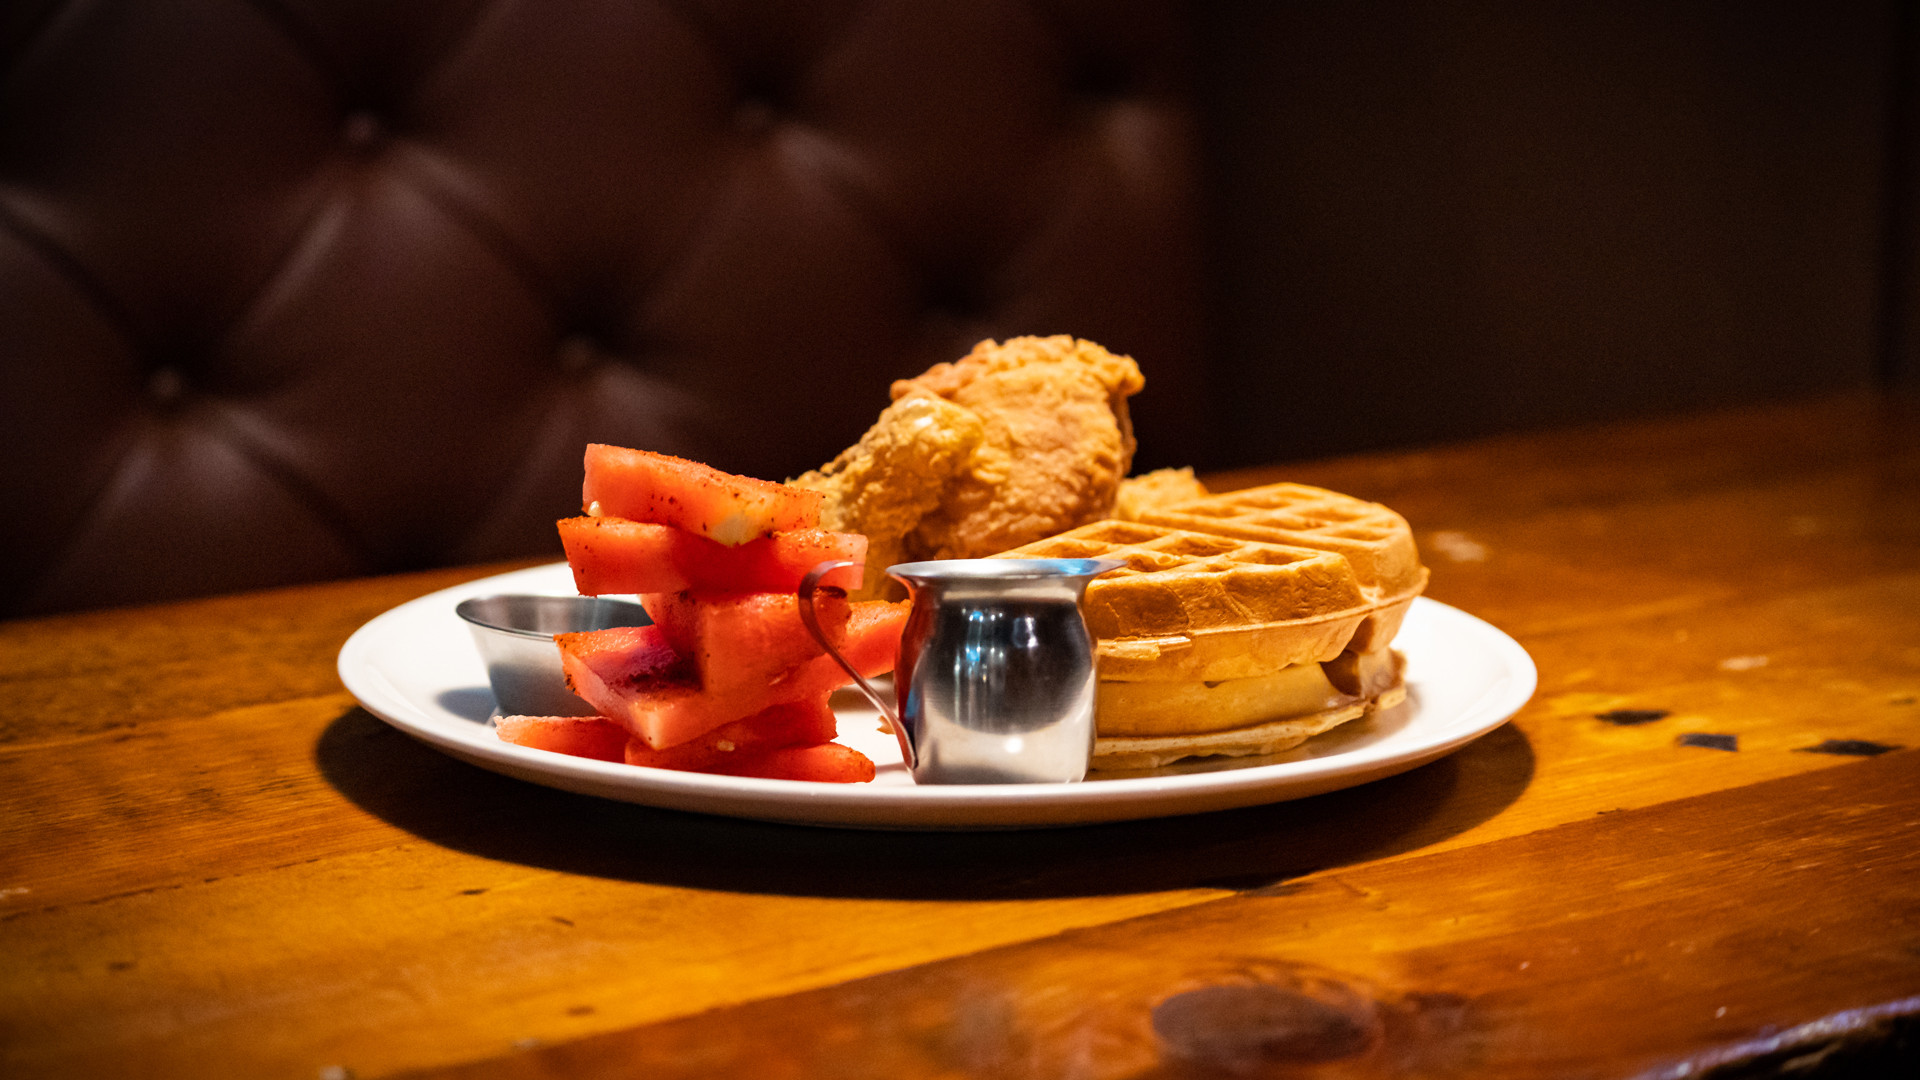 The best new restaurants in Toronto | Chicken and waffles at Prohibition Social House